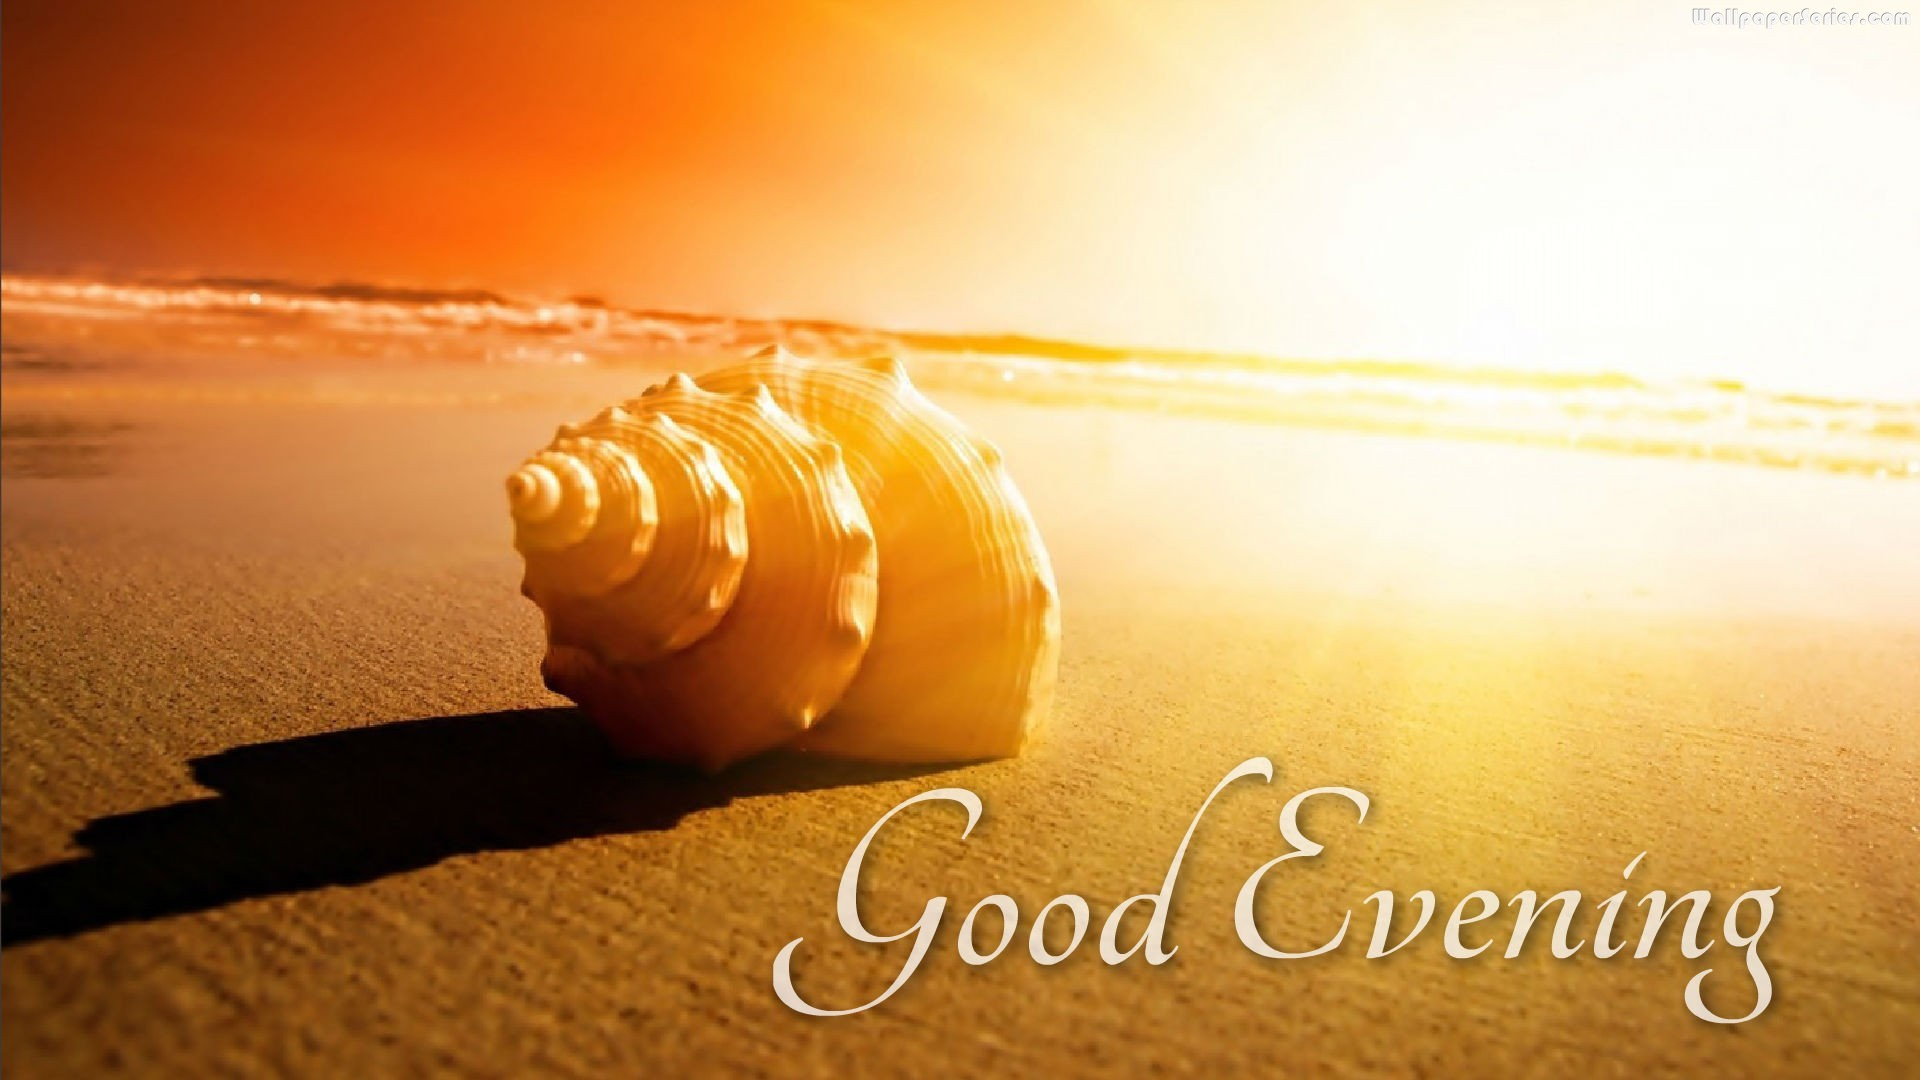 Good Evening Wallpapers : Find best latest Good Evening Wallpapers in HD  for your PC desktop background & mobile phones.